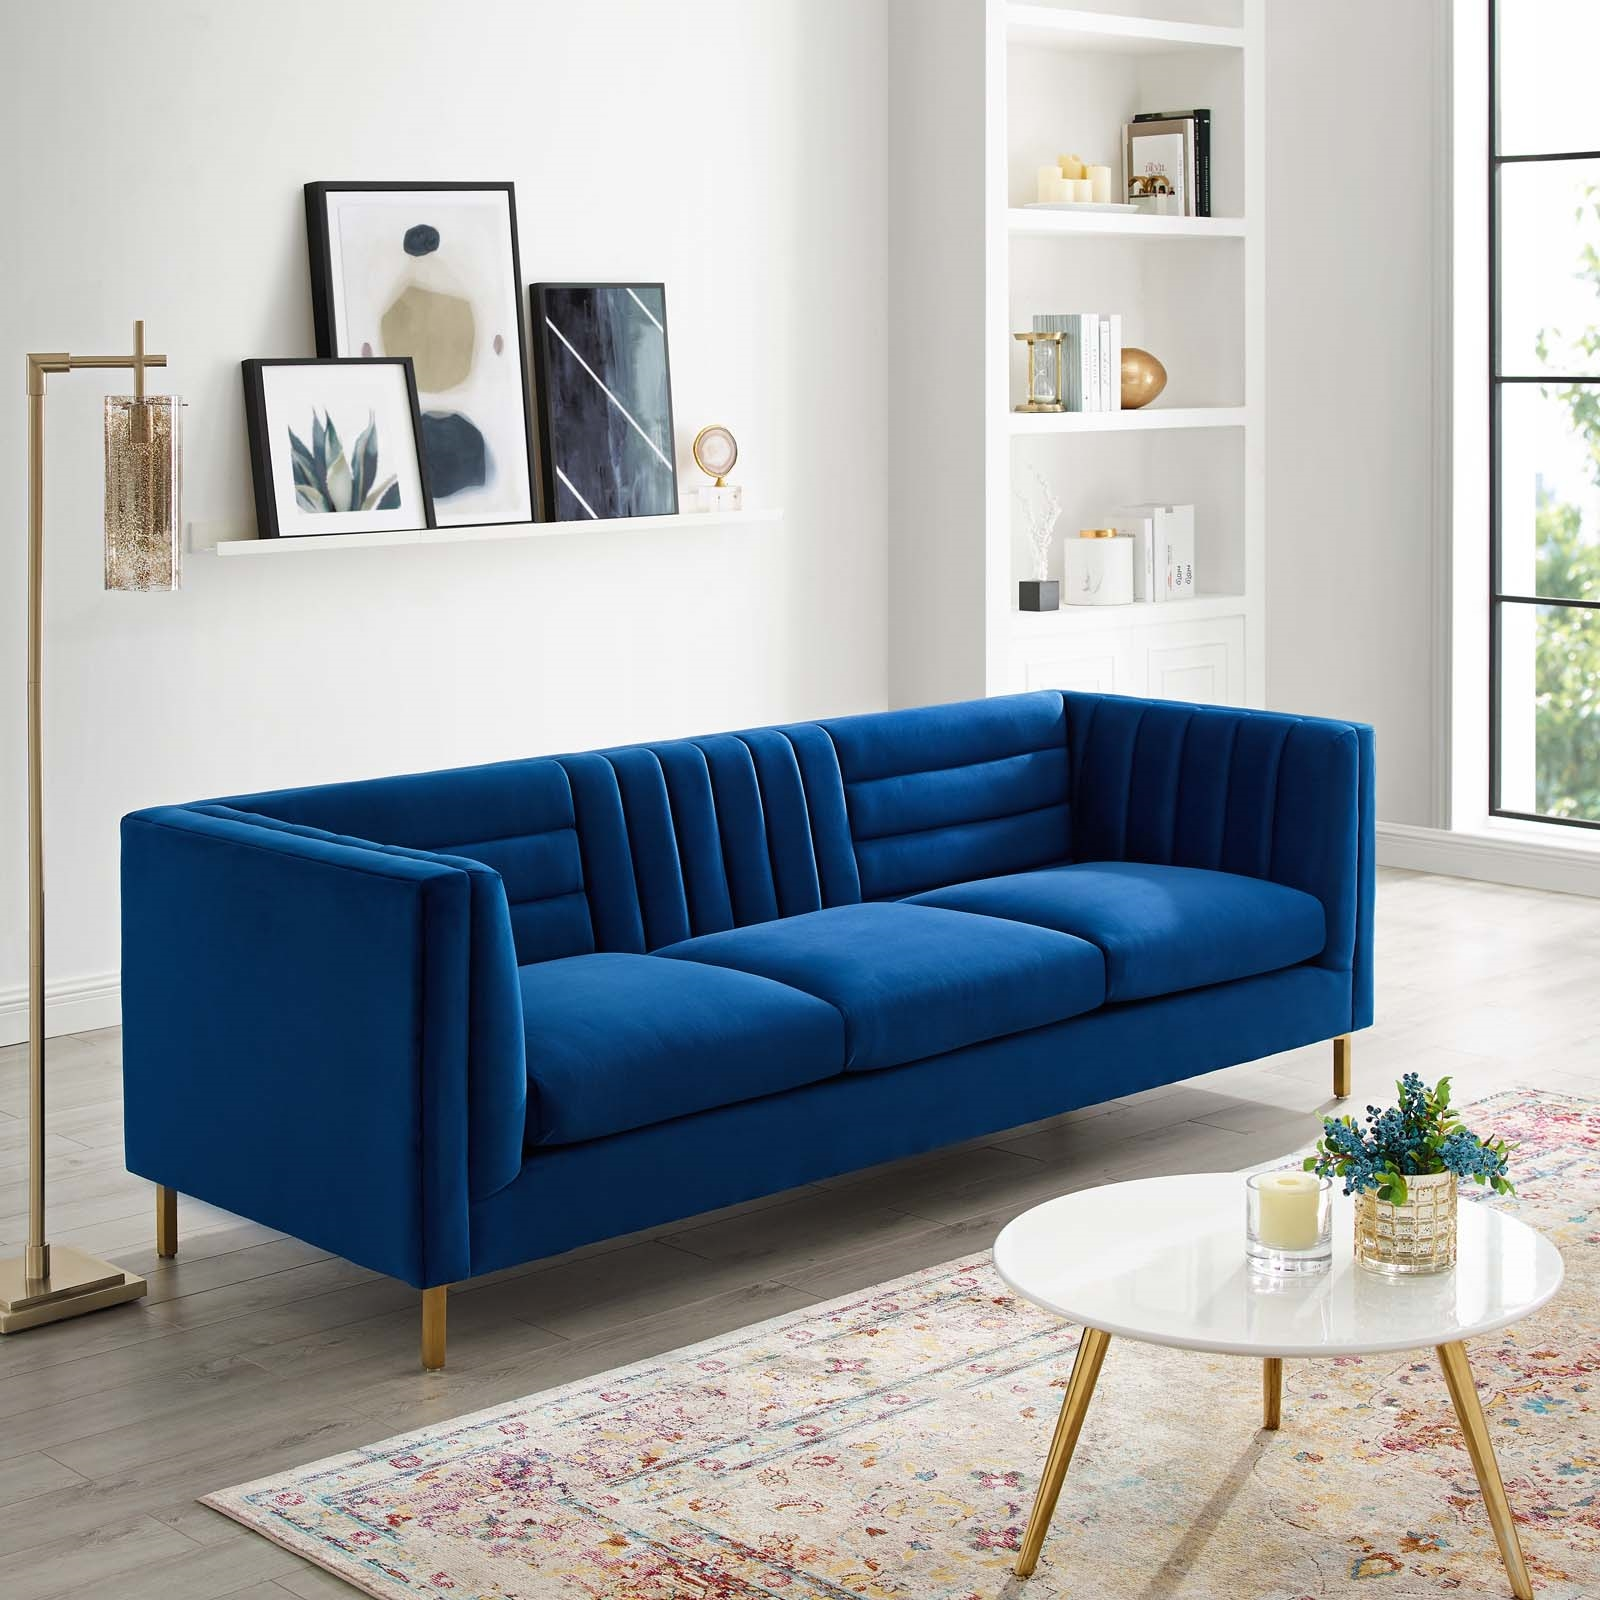 Admirable Ingenuity Channel Tufted Navy Velvet Sofa Creativecarmelina Interior Chair Design Creativecarmelinacom